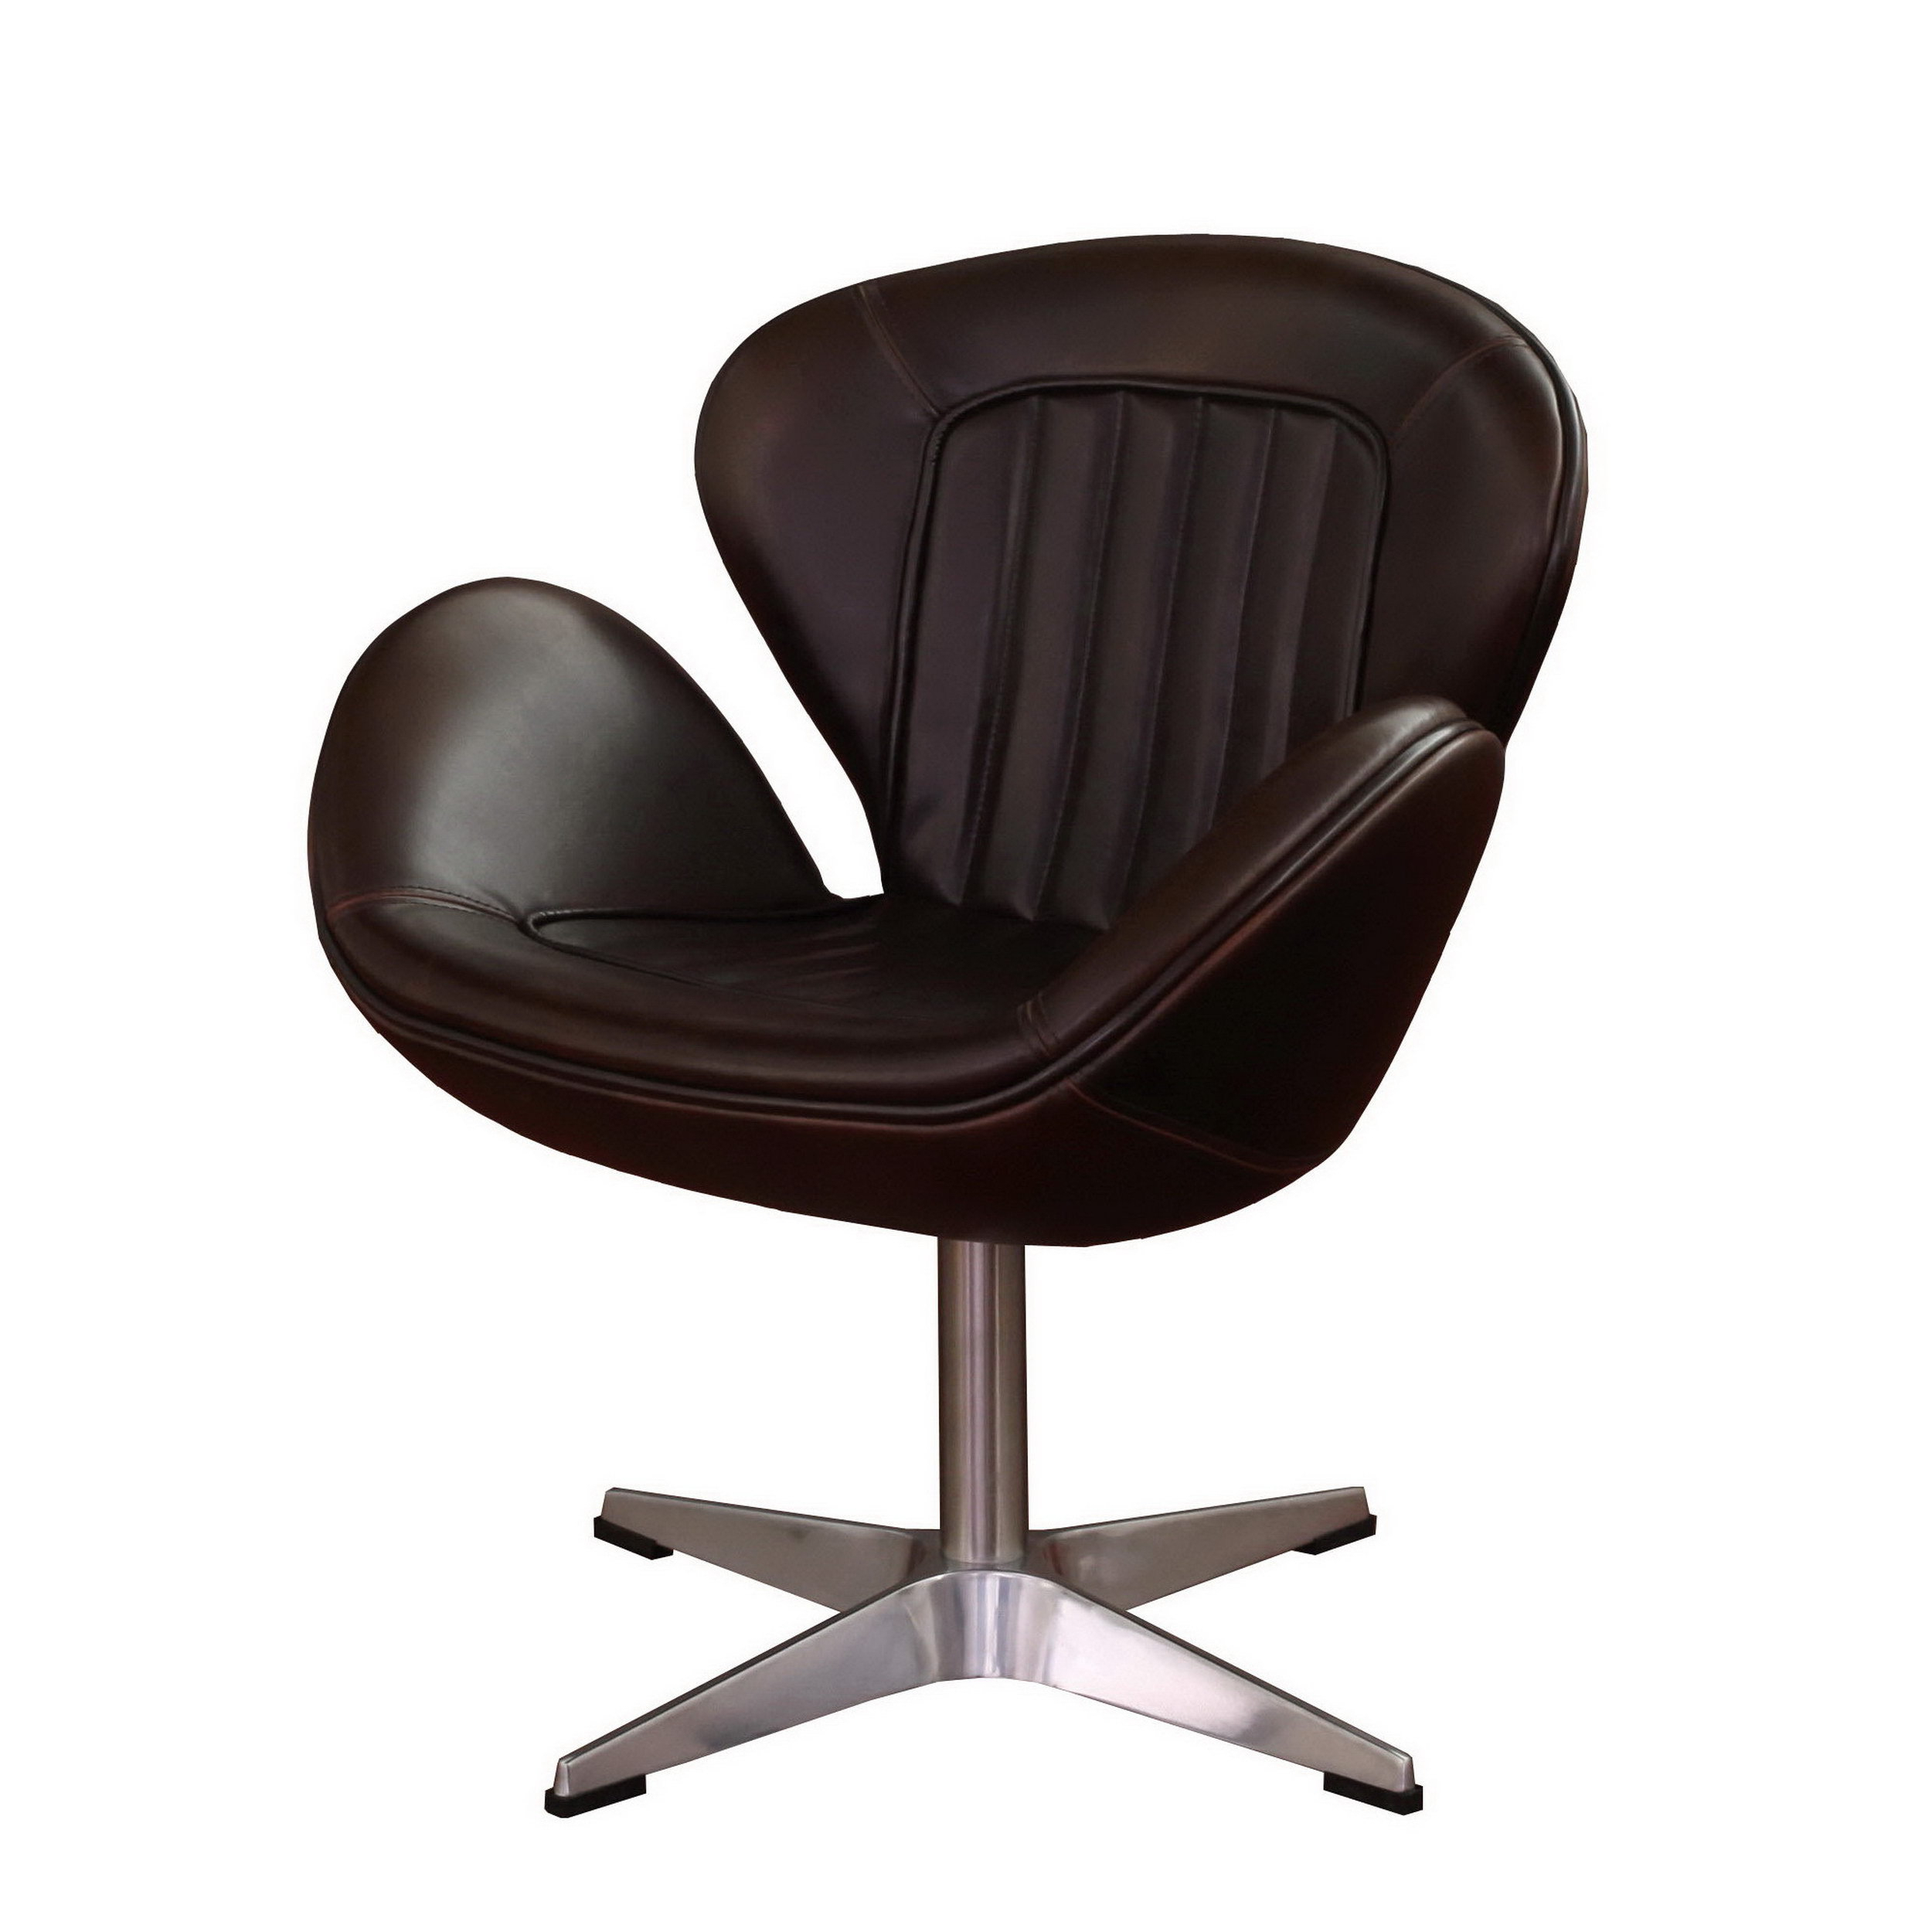 Shop Amelia Vintage Tobacco Leather Swivel Chair – Free Shipping Regarding Most Popular Swivel Tobacco Leather Chairs (View 15 of 20)